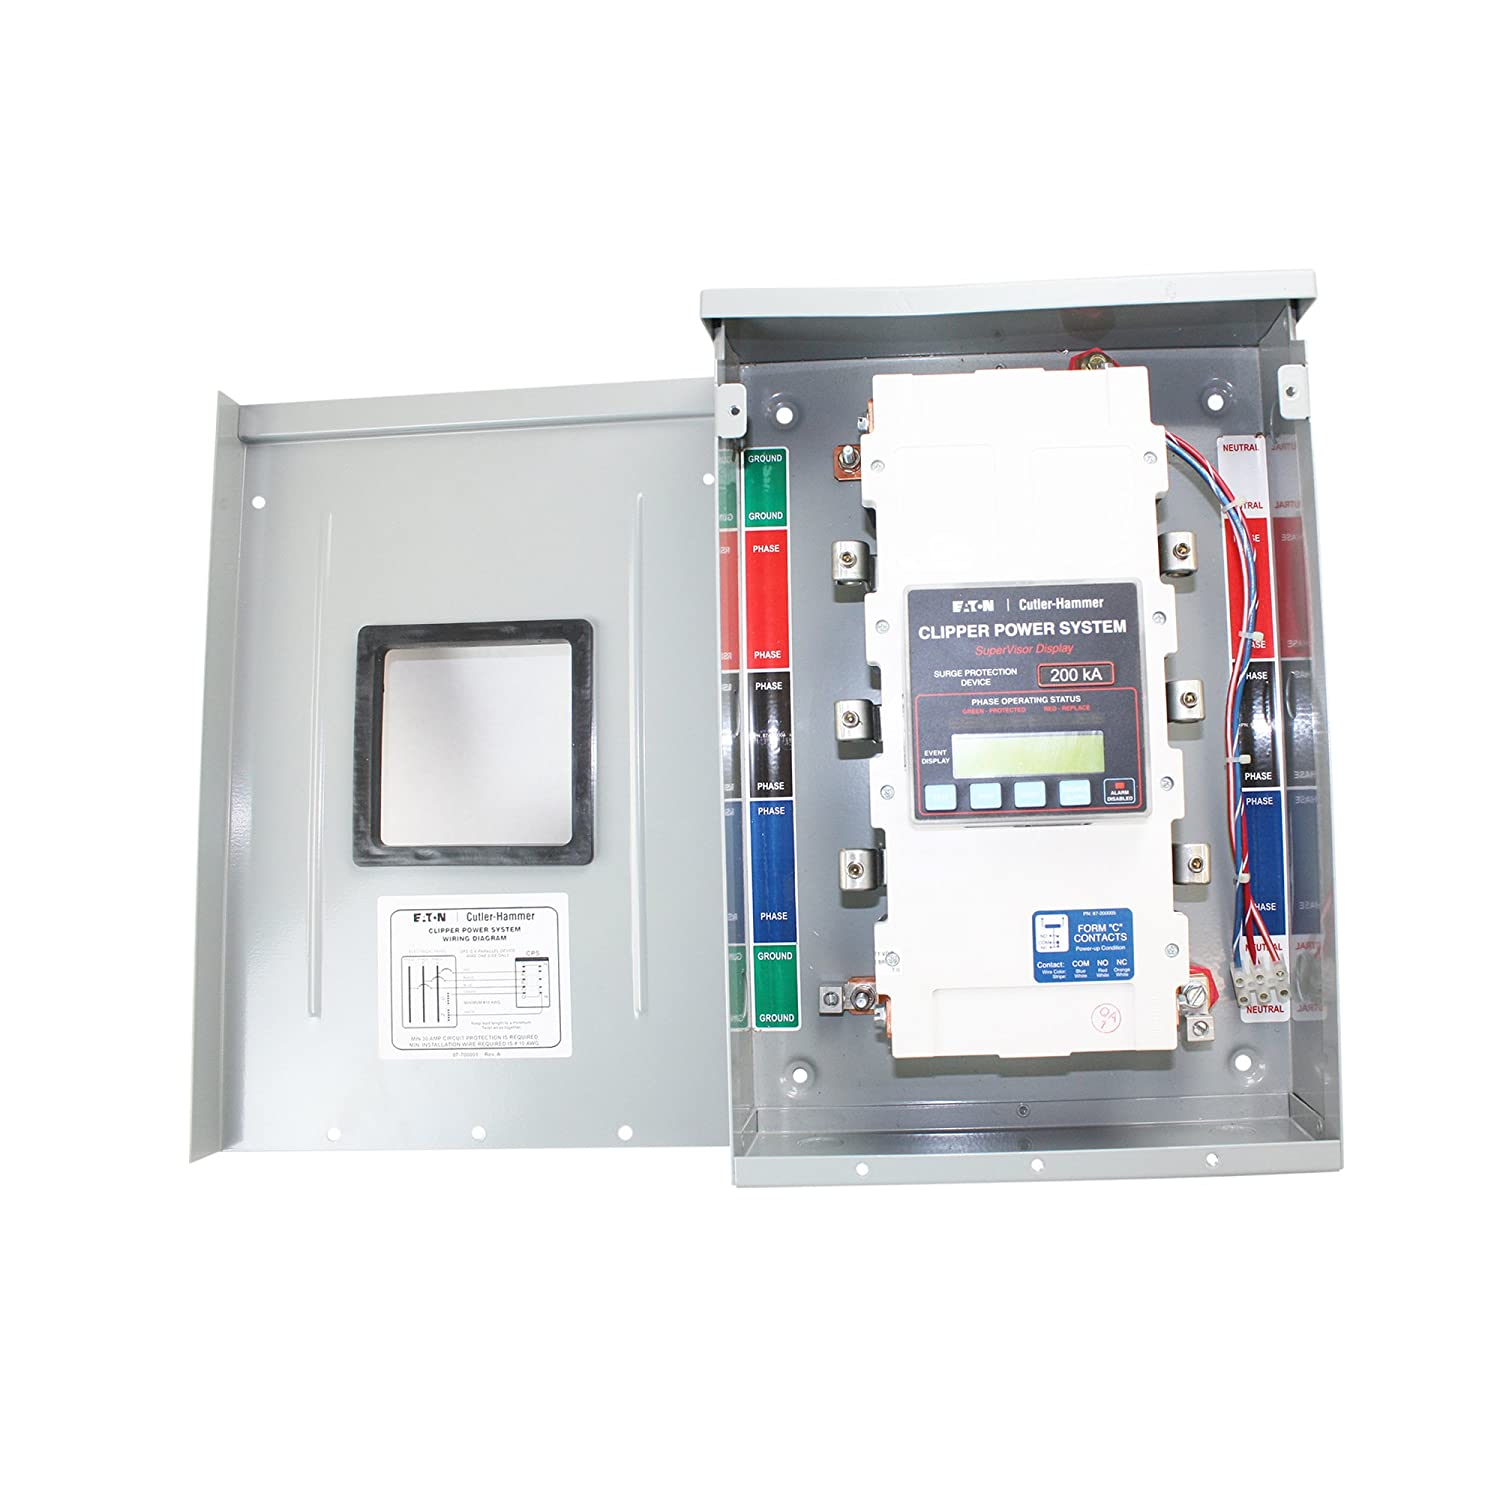 Eaton Cutler Hammer Cps200480ysk Clipper Power System Visor Tvss Surge Protection Device Wiring Diagram Panel